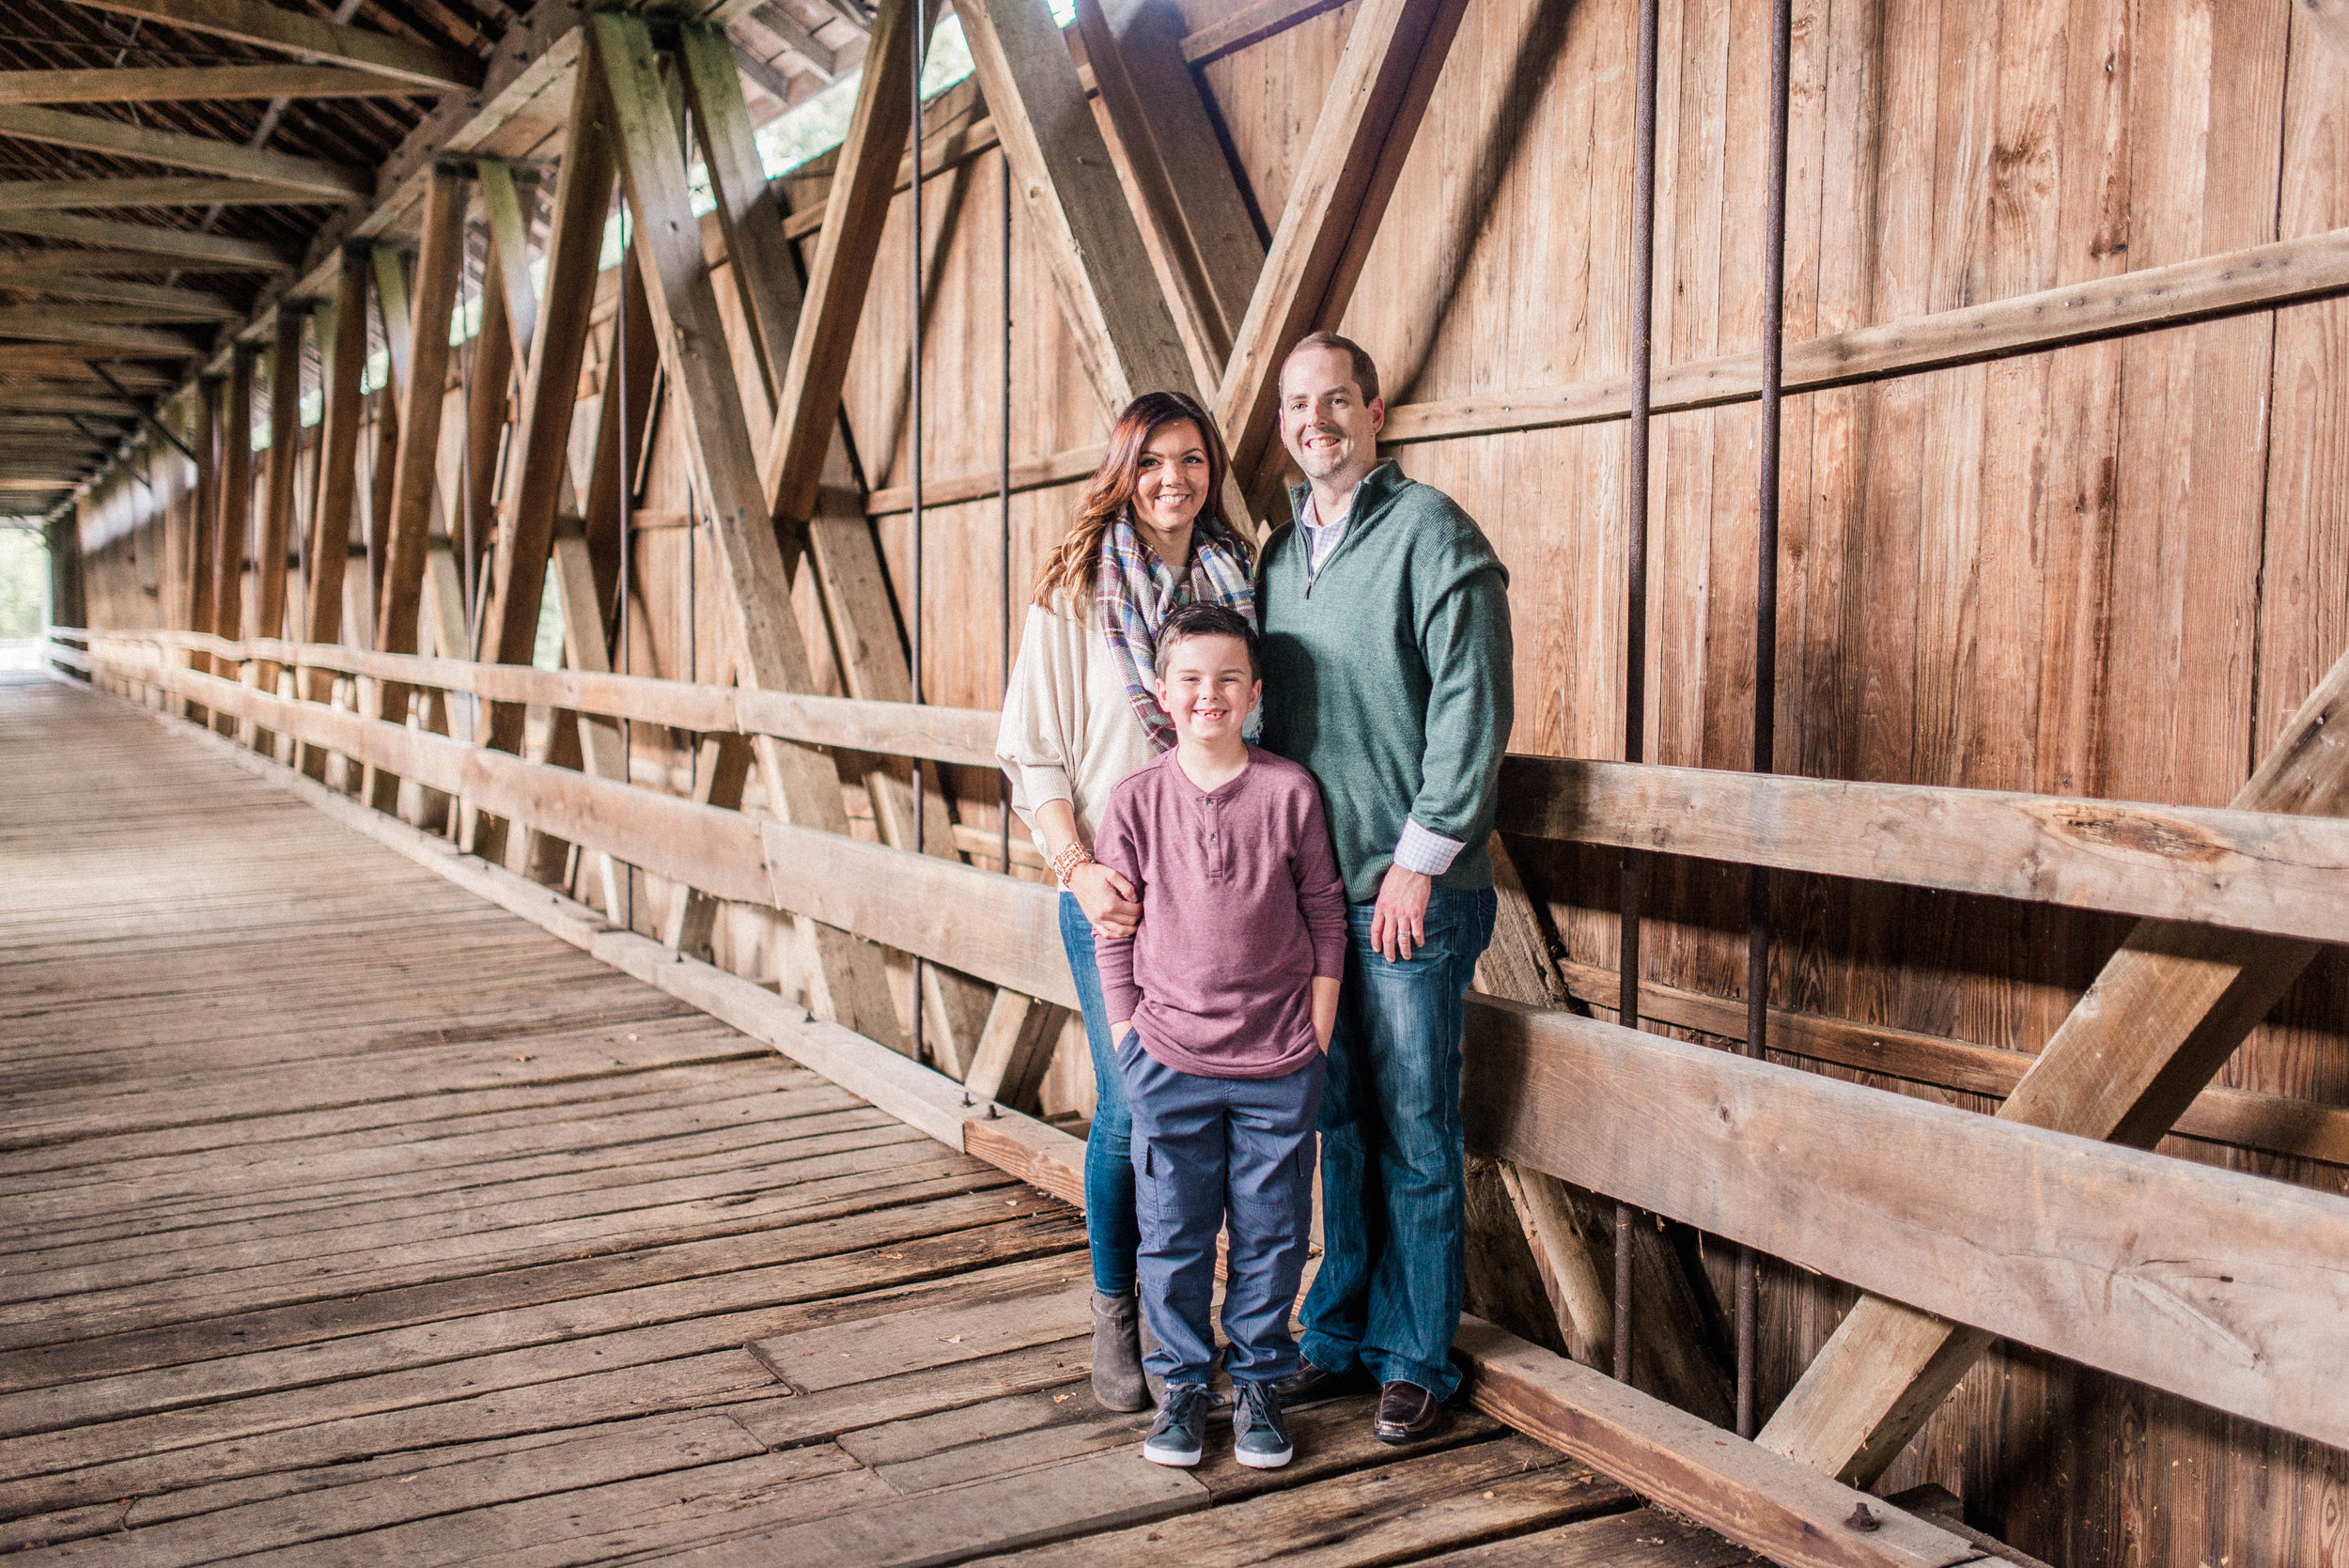 The Fenneman Family | Wooded Photography Session at a Covered Bridge | Noblesville Indiana Family Photographers